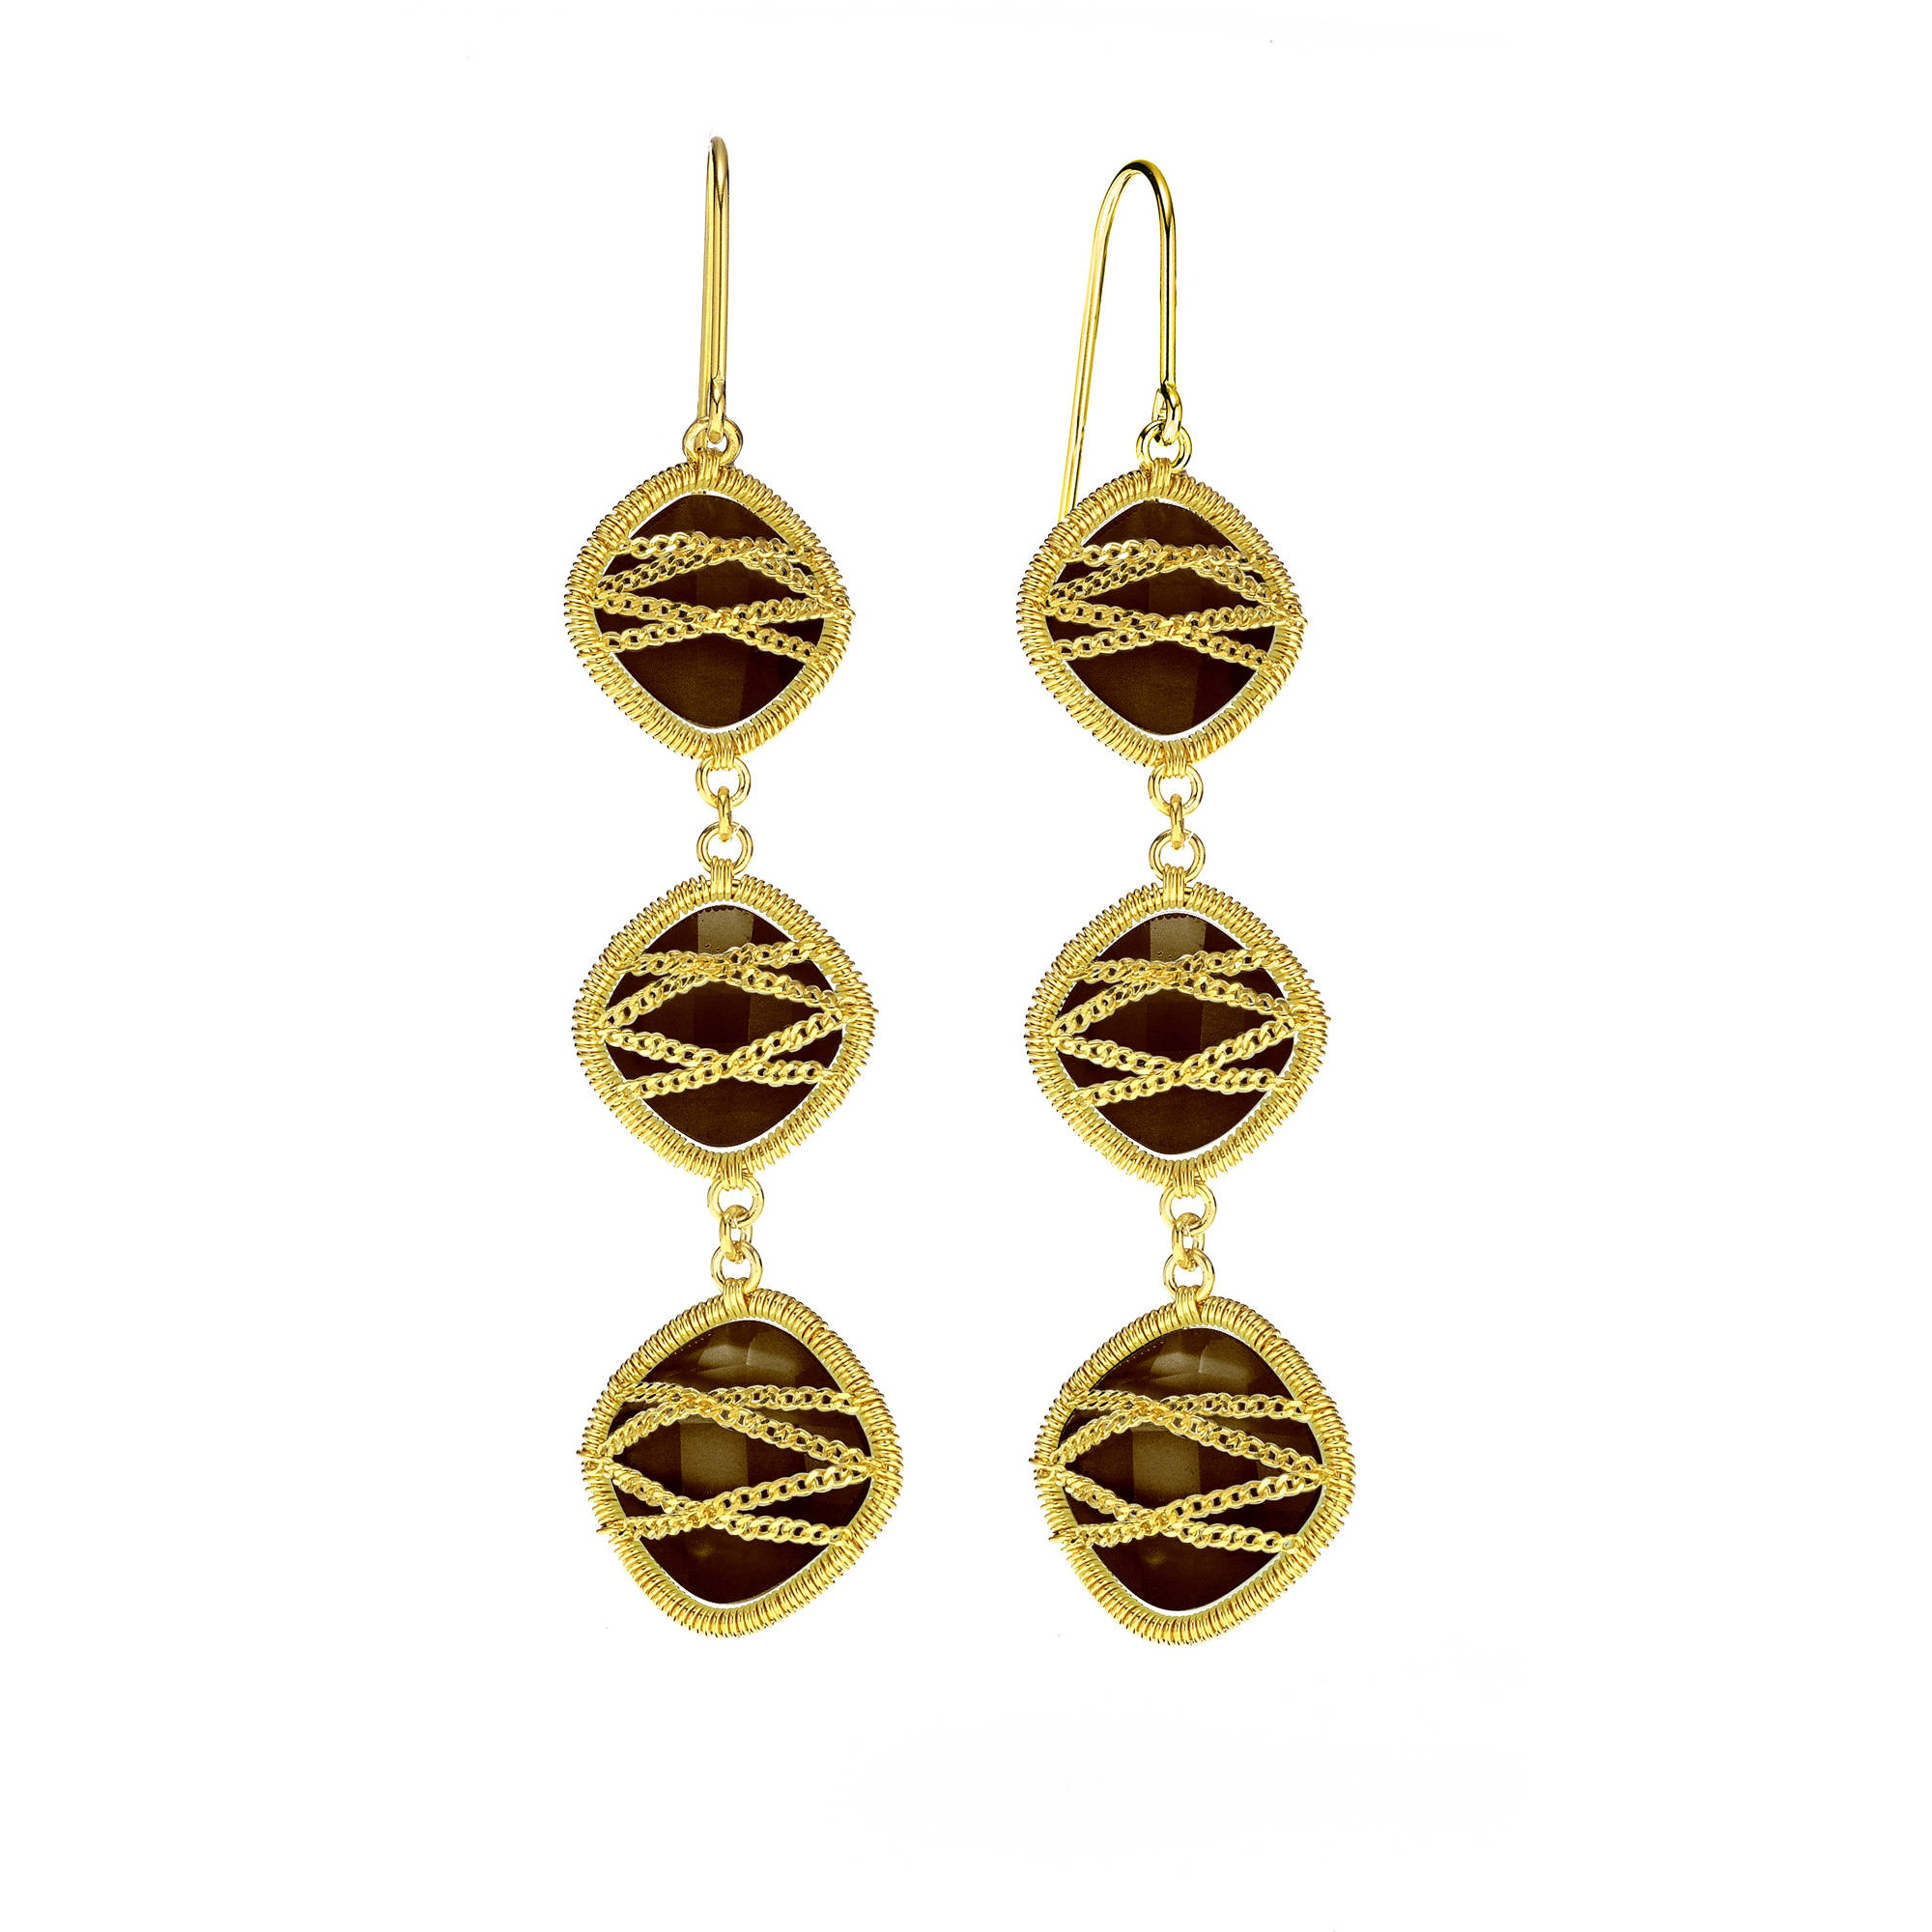 Image of 5th & Main 18kt Gold over Sterling Silver Hand-Wrapped Triple-Drop Squared Smokey Quartz Stone Earrings